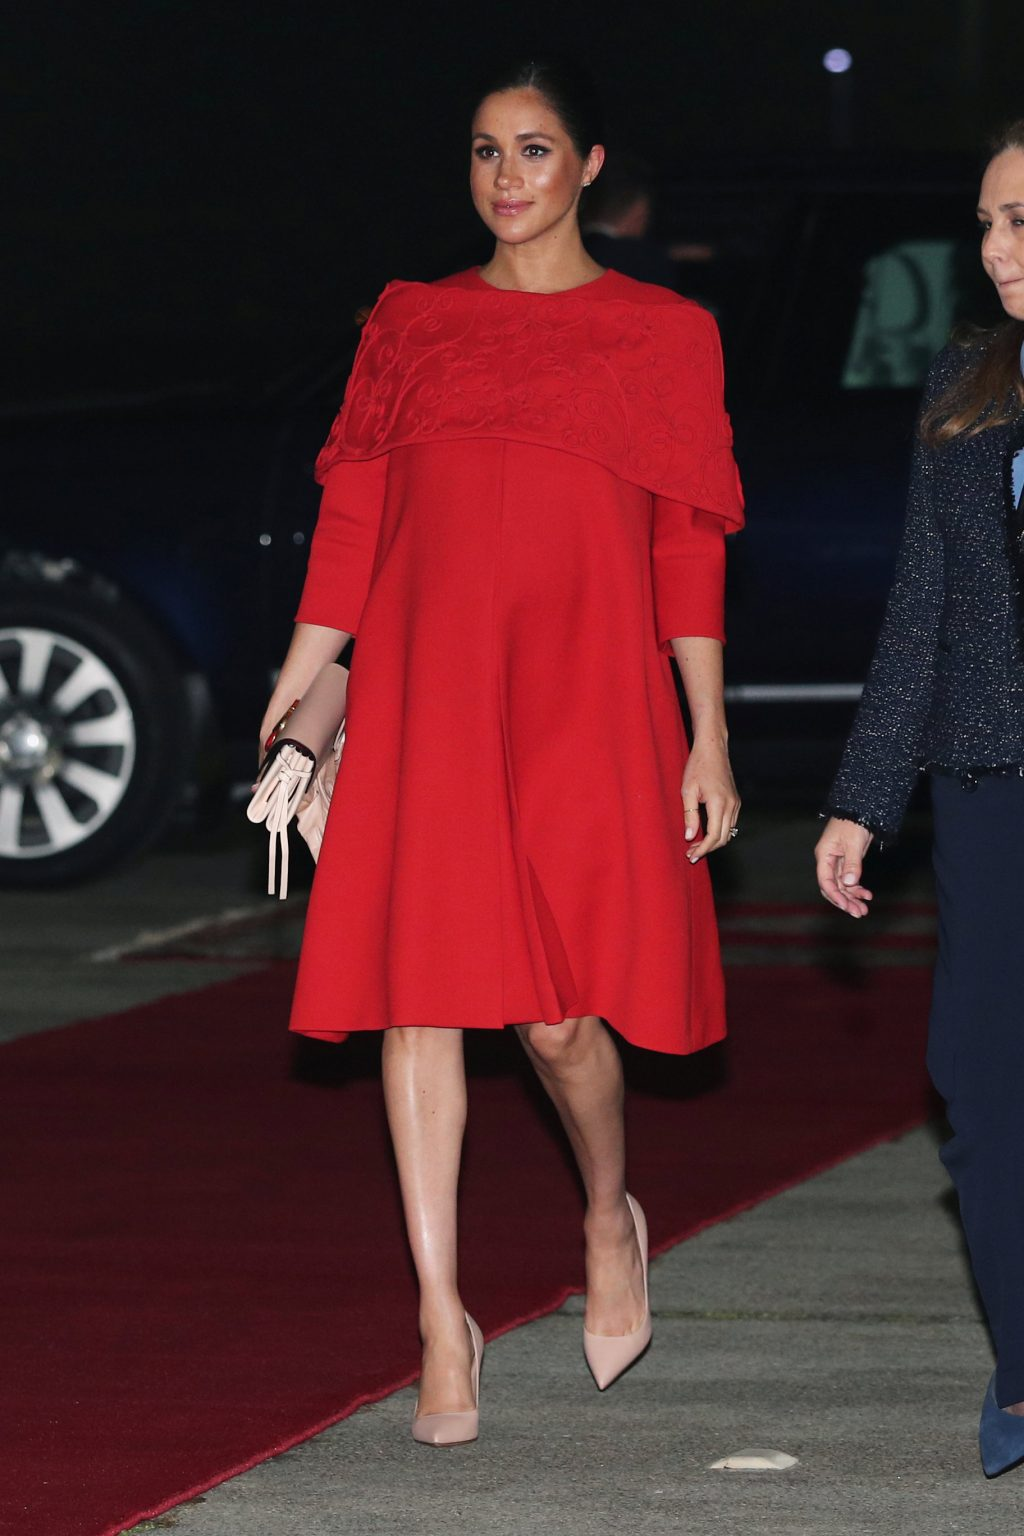 Meghan Markle Visits Morocco in a Dress Rife with Symbolism